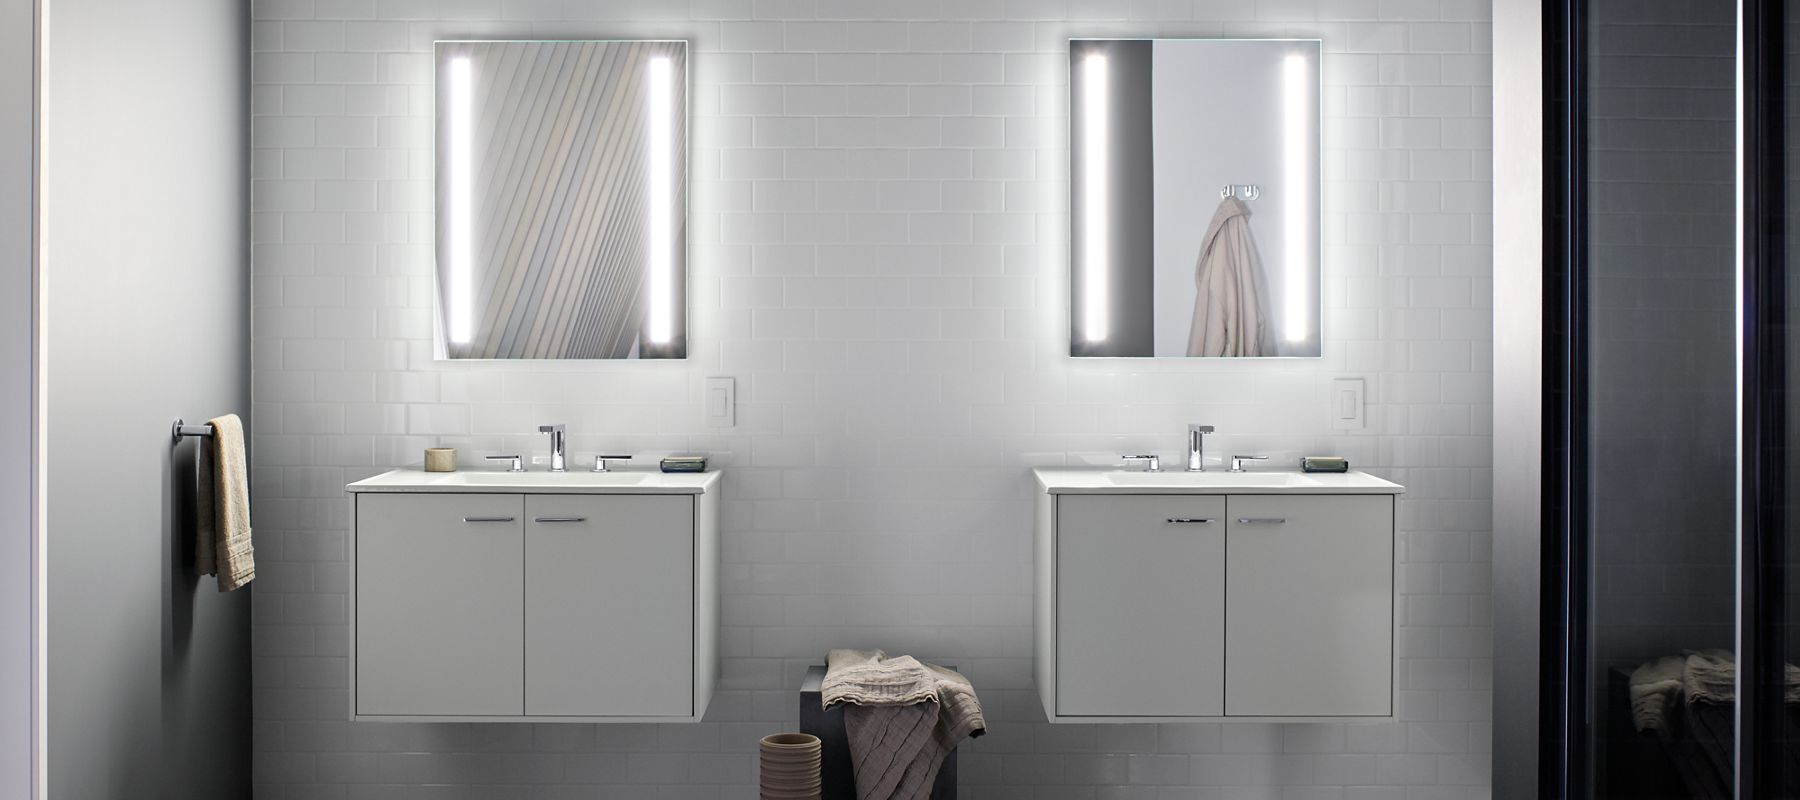 Kohler Verdera Lighted Mirrors And Medicine Cabinets Interior Paint House Paint Interior Interior Paint Colors [ 800 x 1800 Pixel ]